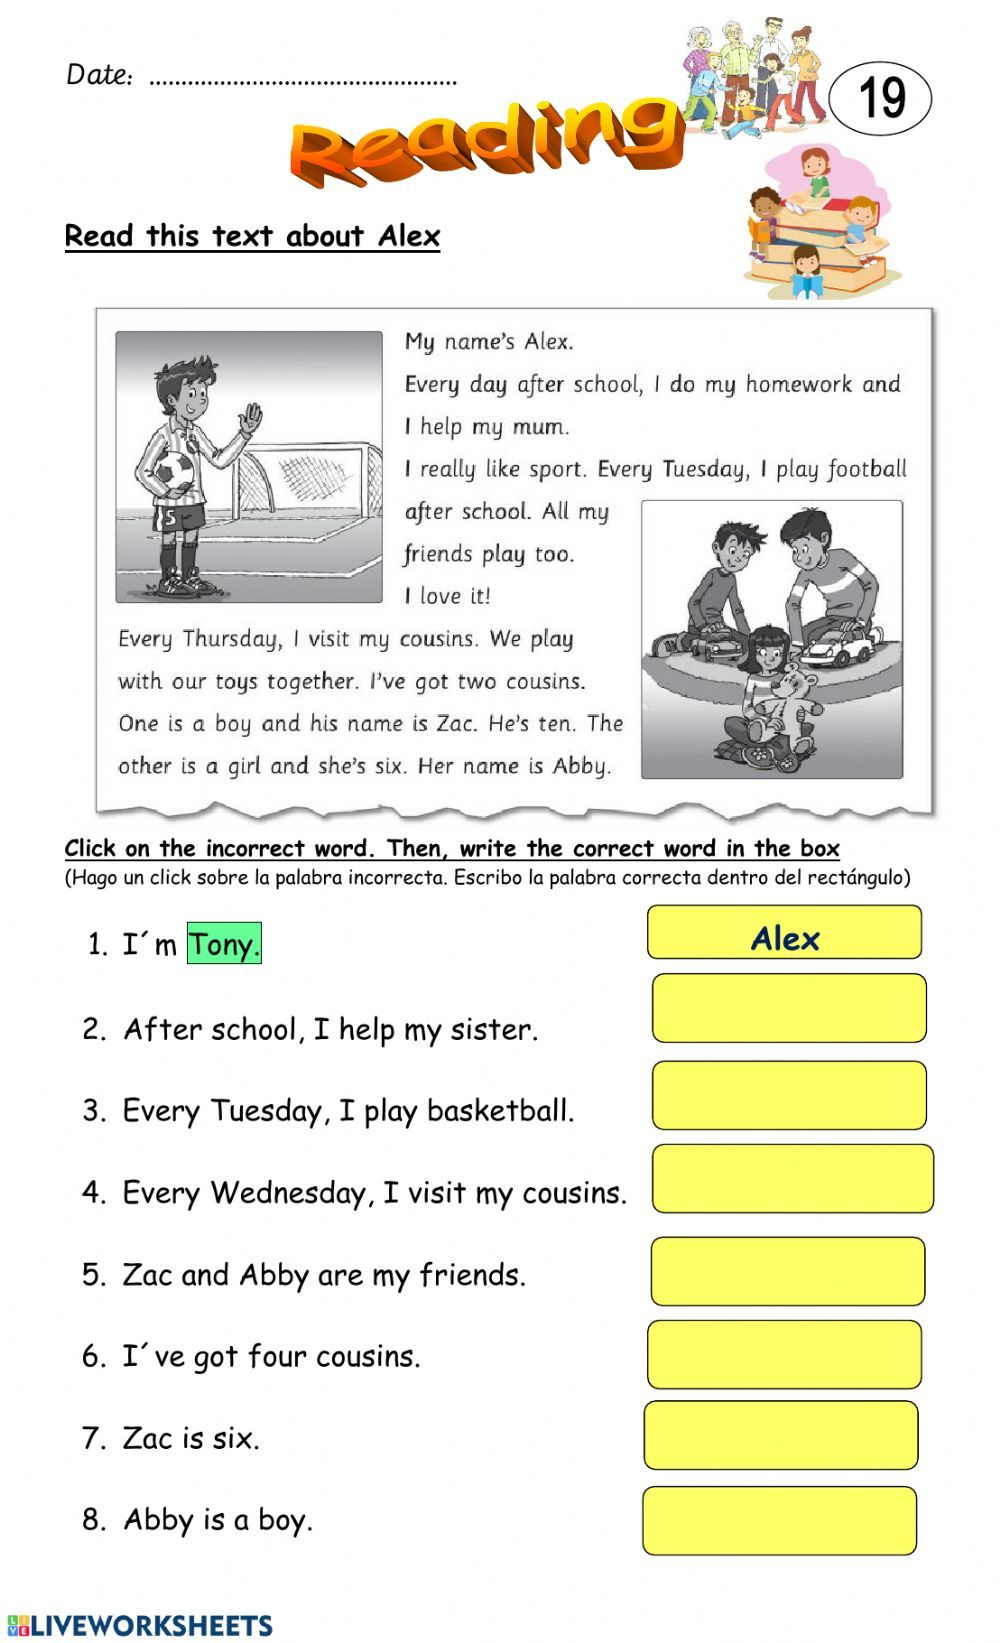 Reading Comprehension Interactive And Downloadable Worksheet You Can Do The Exercises Onli In 2020 Reading Comprehension Worksheets English As A Second Language Esl [ 1643 x 1000 Pixel ]